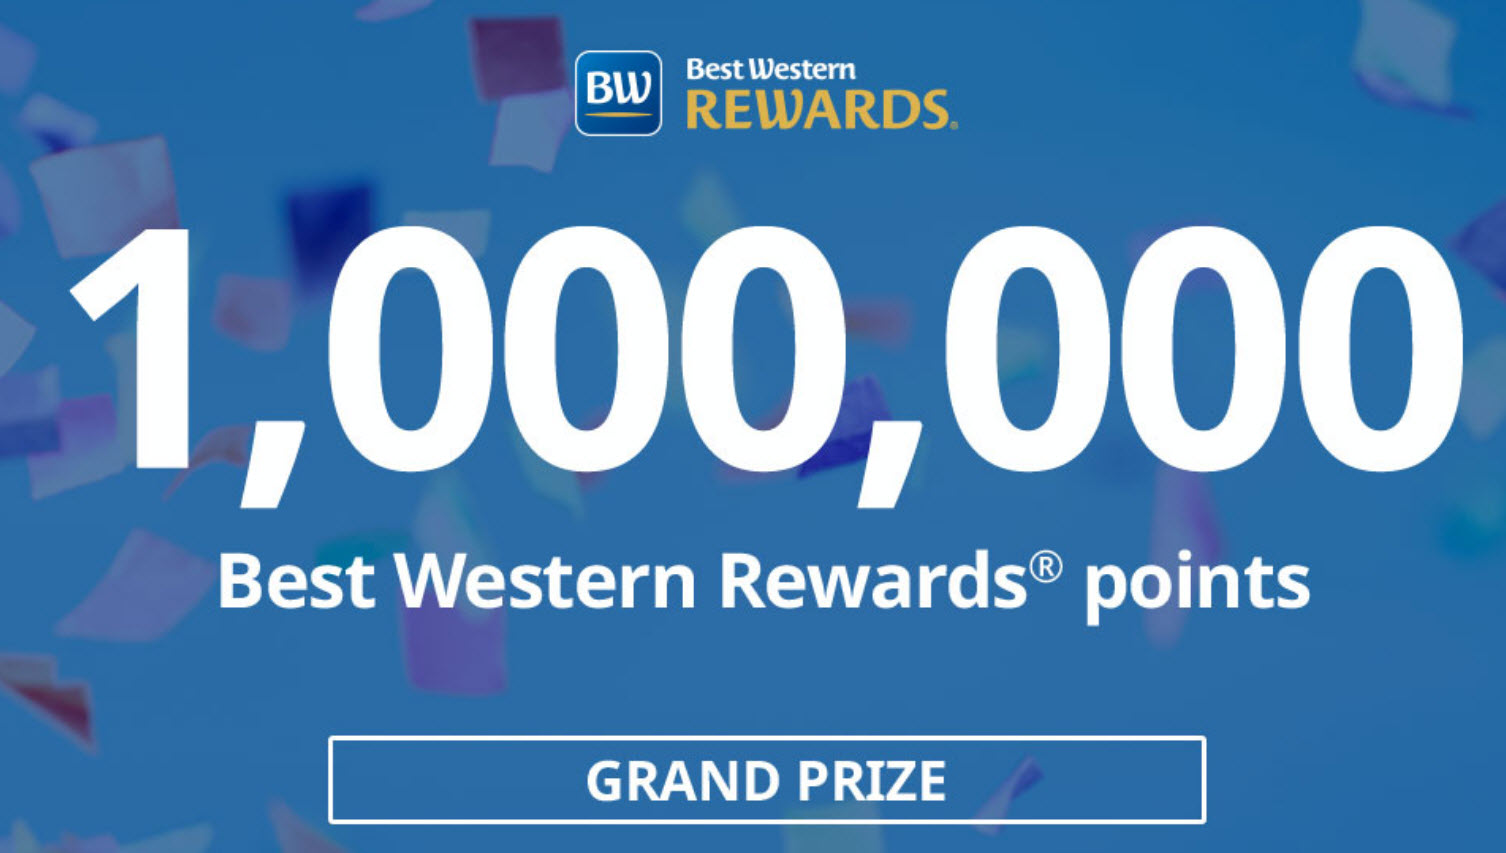 SWEETIES PICK! Best Western Black Friday Instant Win Game (150,000+ Prizes) - Bets Western is giving away over 150,000 FREEBest Western Rewards Points in theirBlack Friday Instant Win Game